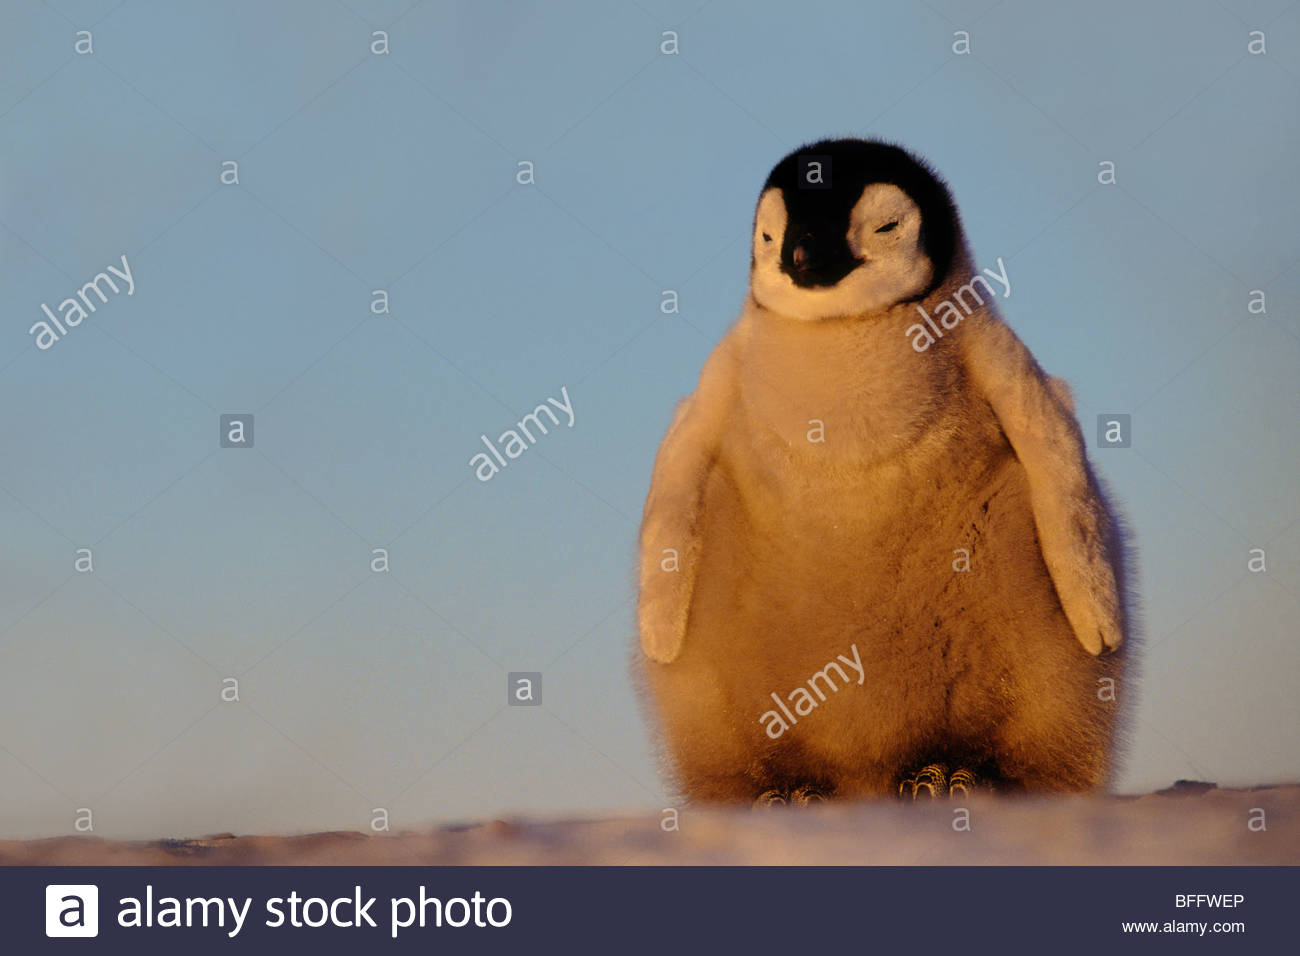 Poussin manchot empereur, Aptenodytes forsteri, Antarctique Photo Stock